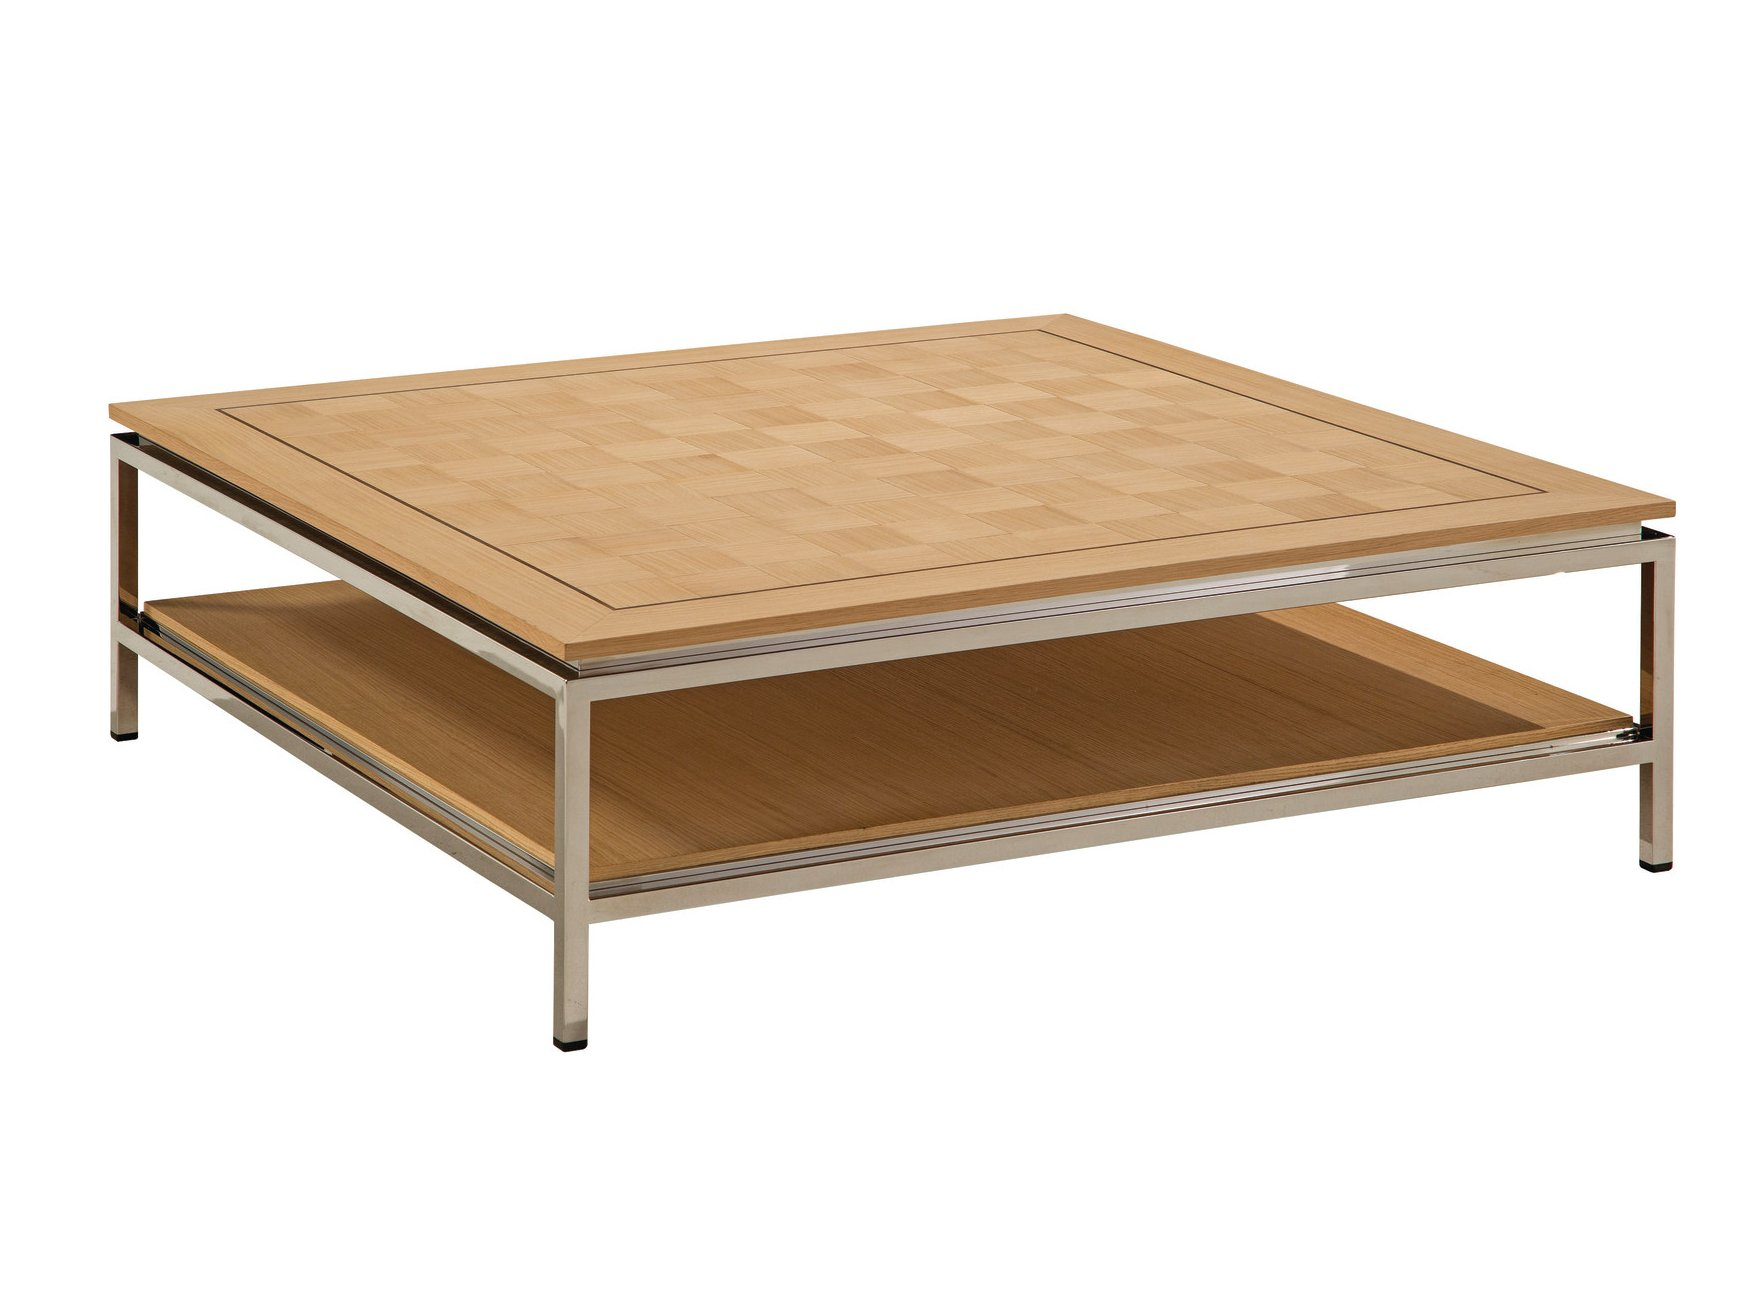 Epoq table basse carr e collection epoq by roche bobois design les h ritiers - Table basse salon carree ...